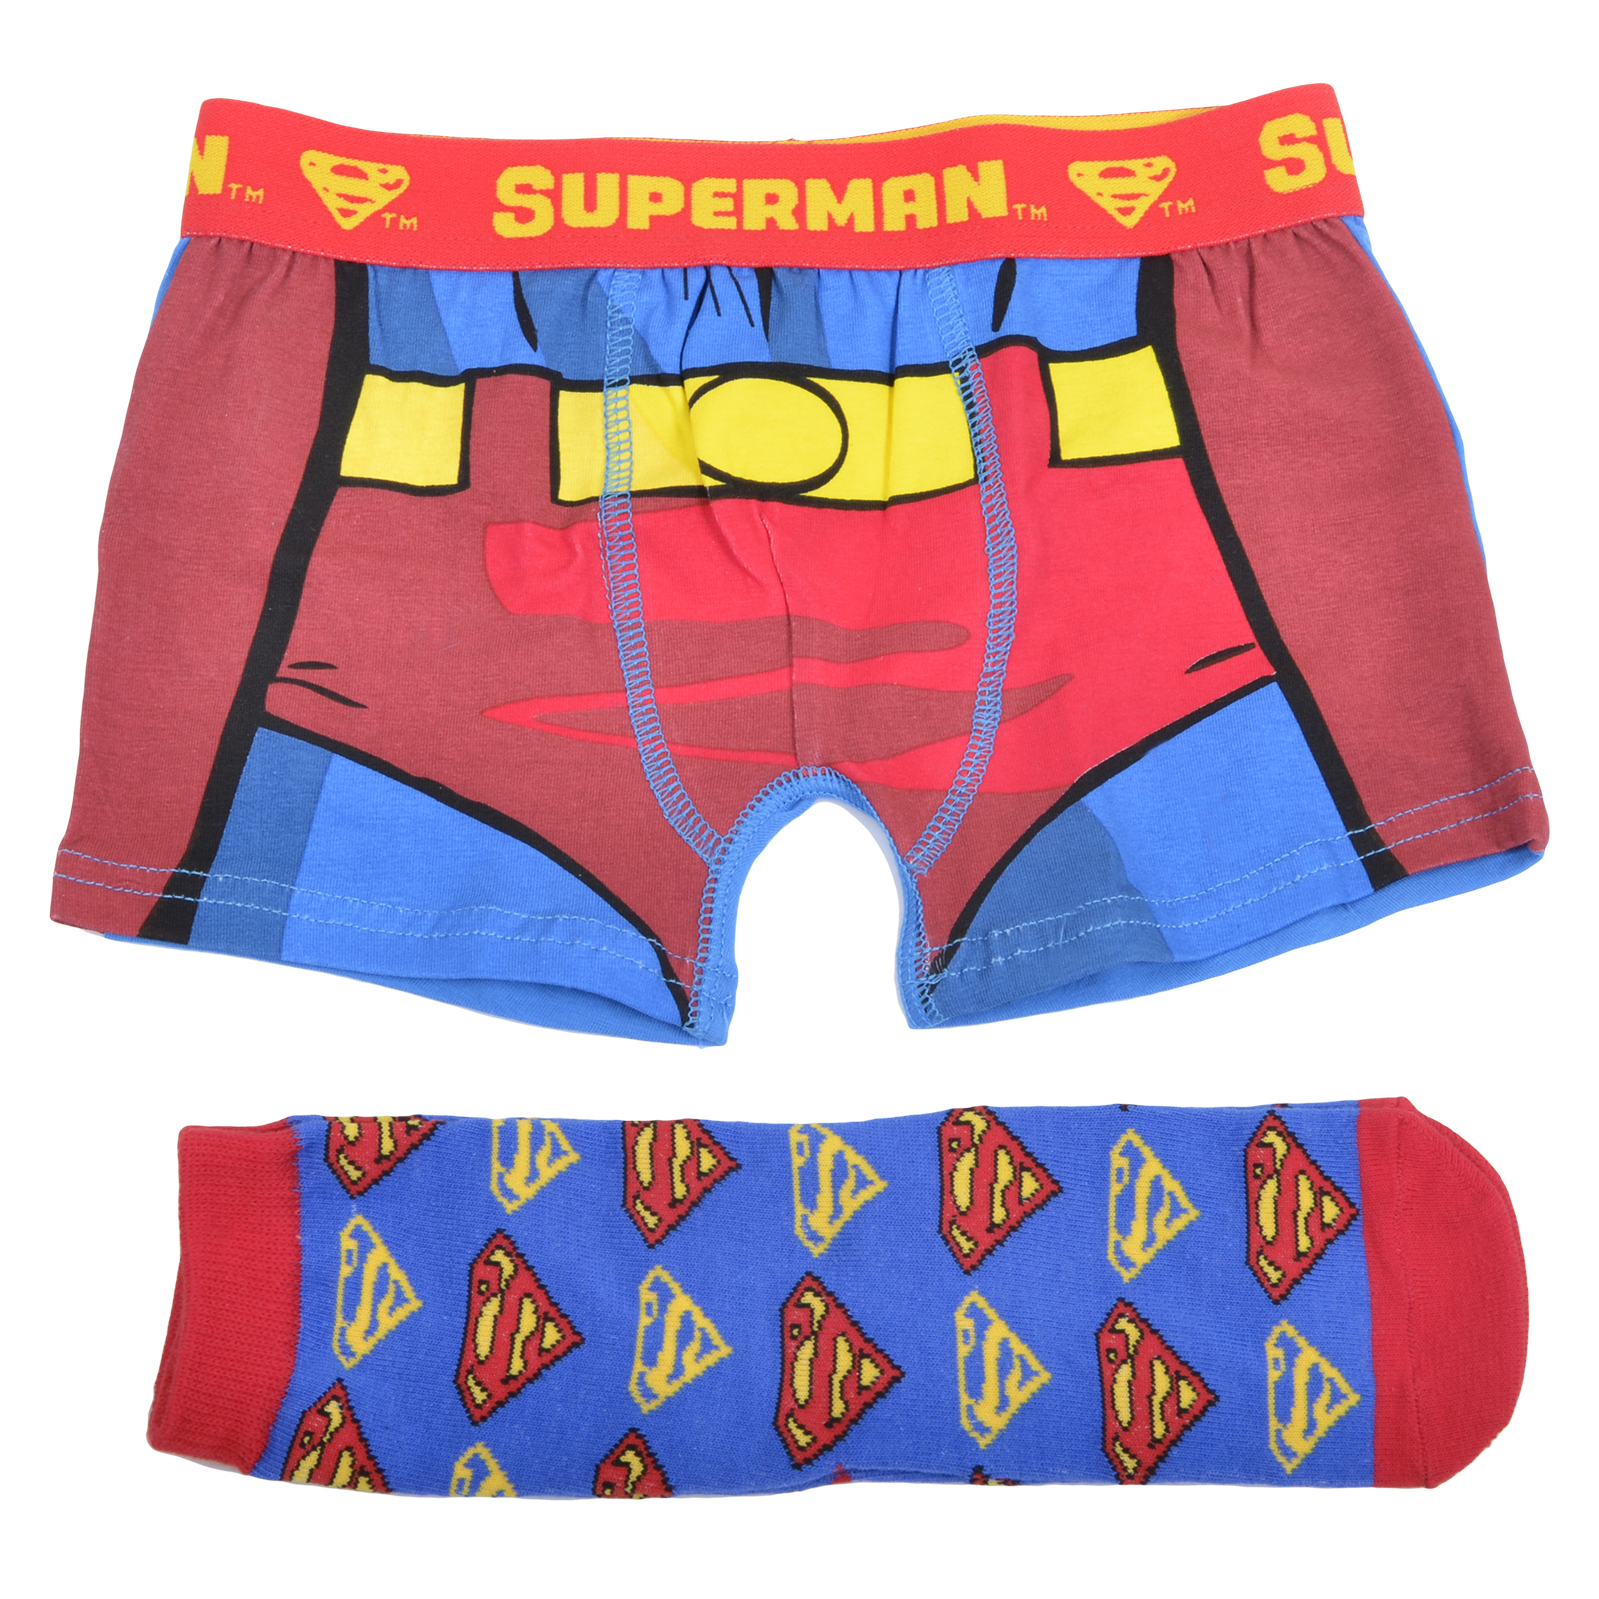 Find great deals on eBay for kids boxers. Shop with confidence.